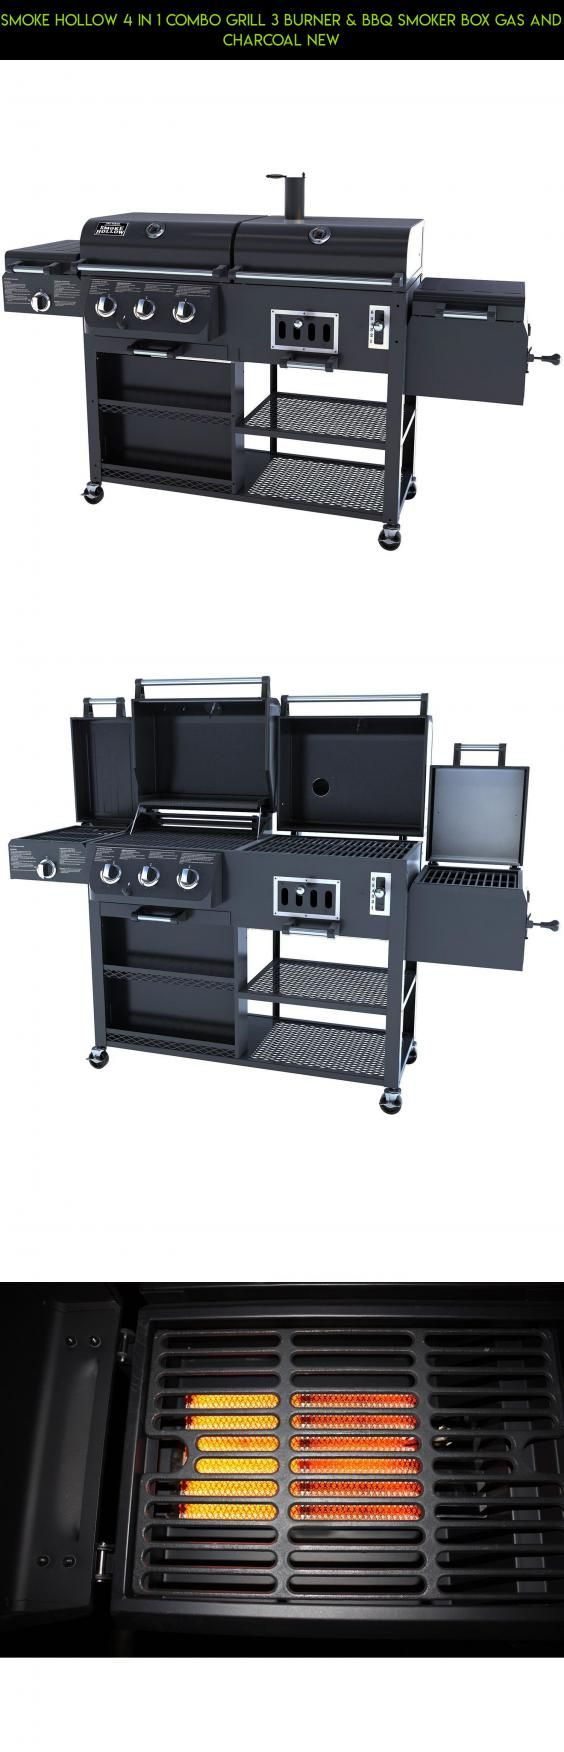 Smoke Hollow 4 in 1 Combo Grill 3 burner & BBQ Smoker Box Gas and Charcoal New #products #gas #technology #combo #tech #and #kit #camera #plans #drone #shopping #grills #racing #gadgets #fpv #charcoal #parts